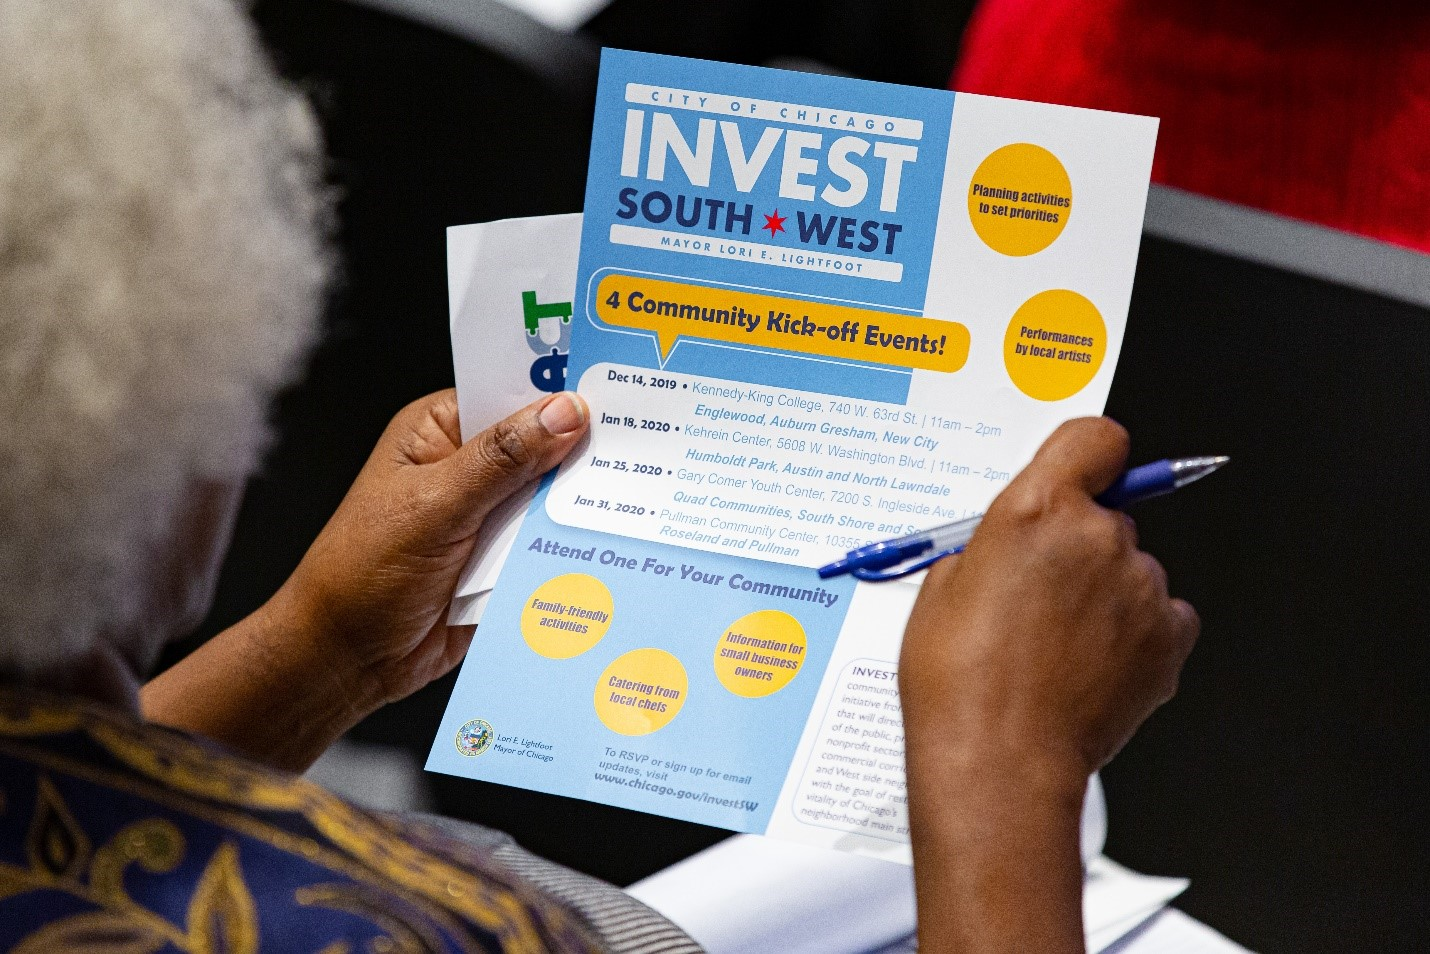 The City of Chicago's Invest Southwest Initiative will support development in Austin and other communities